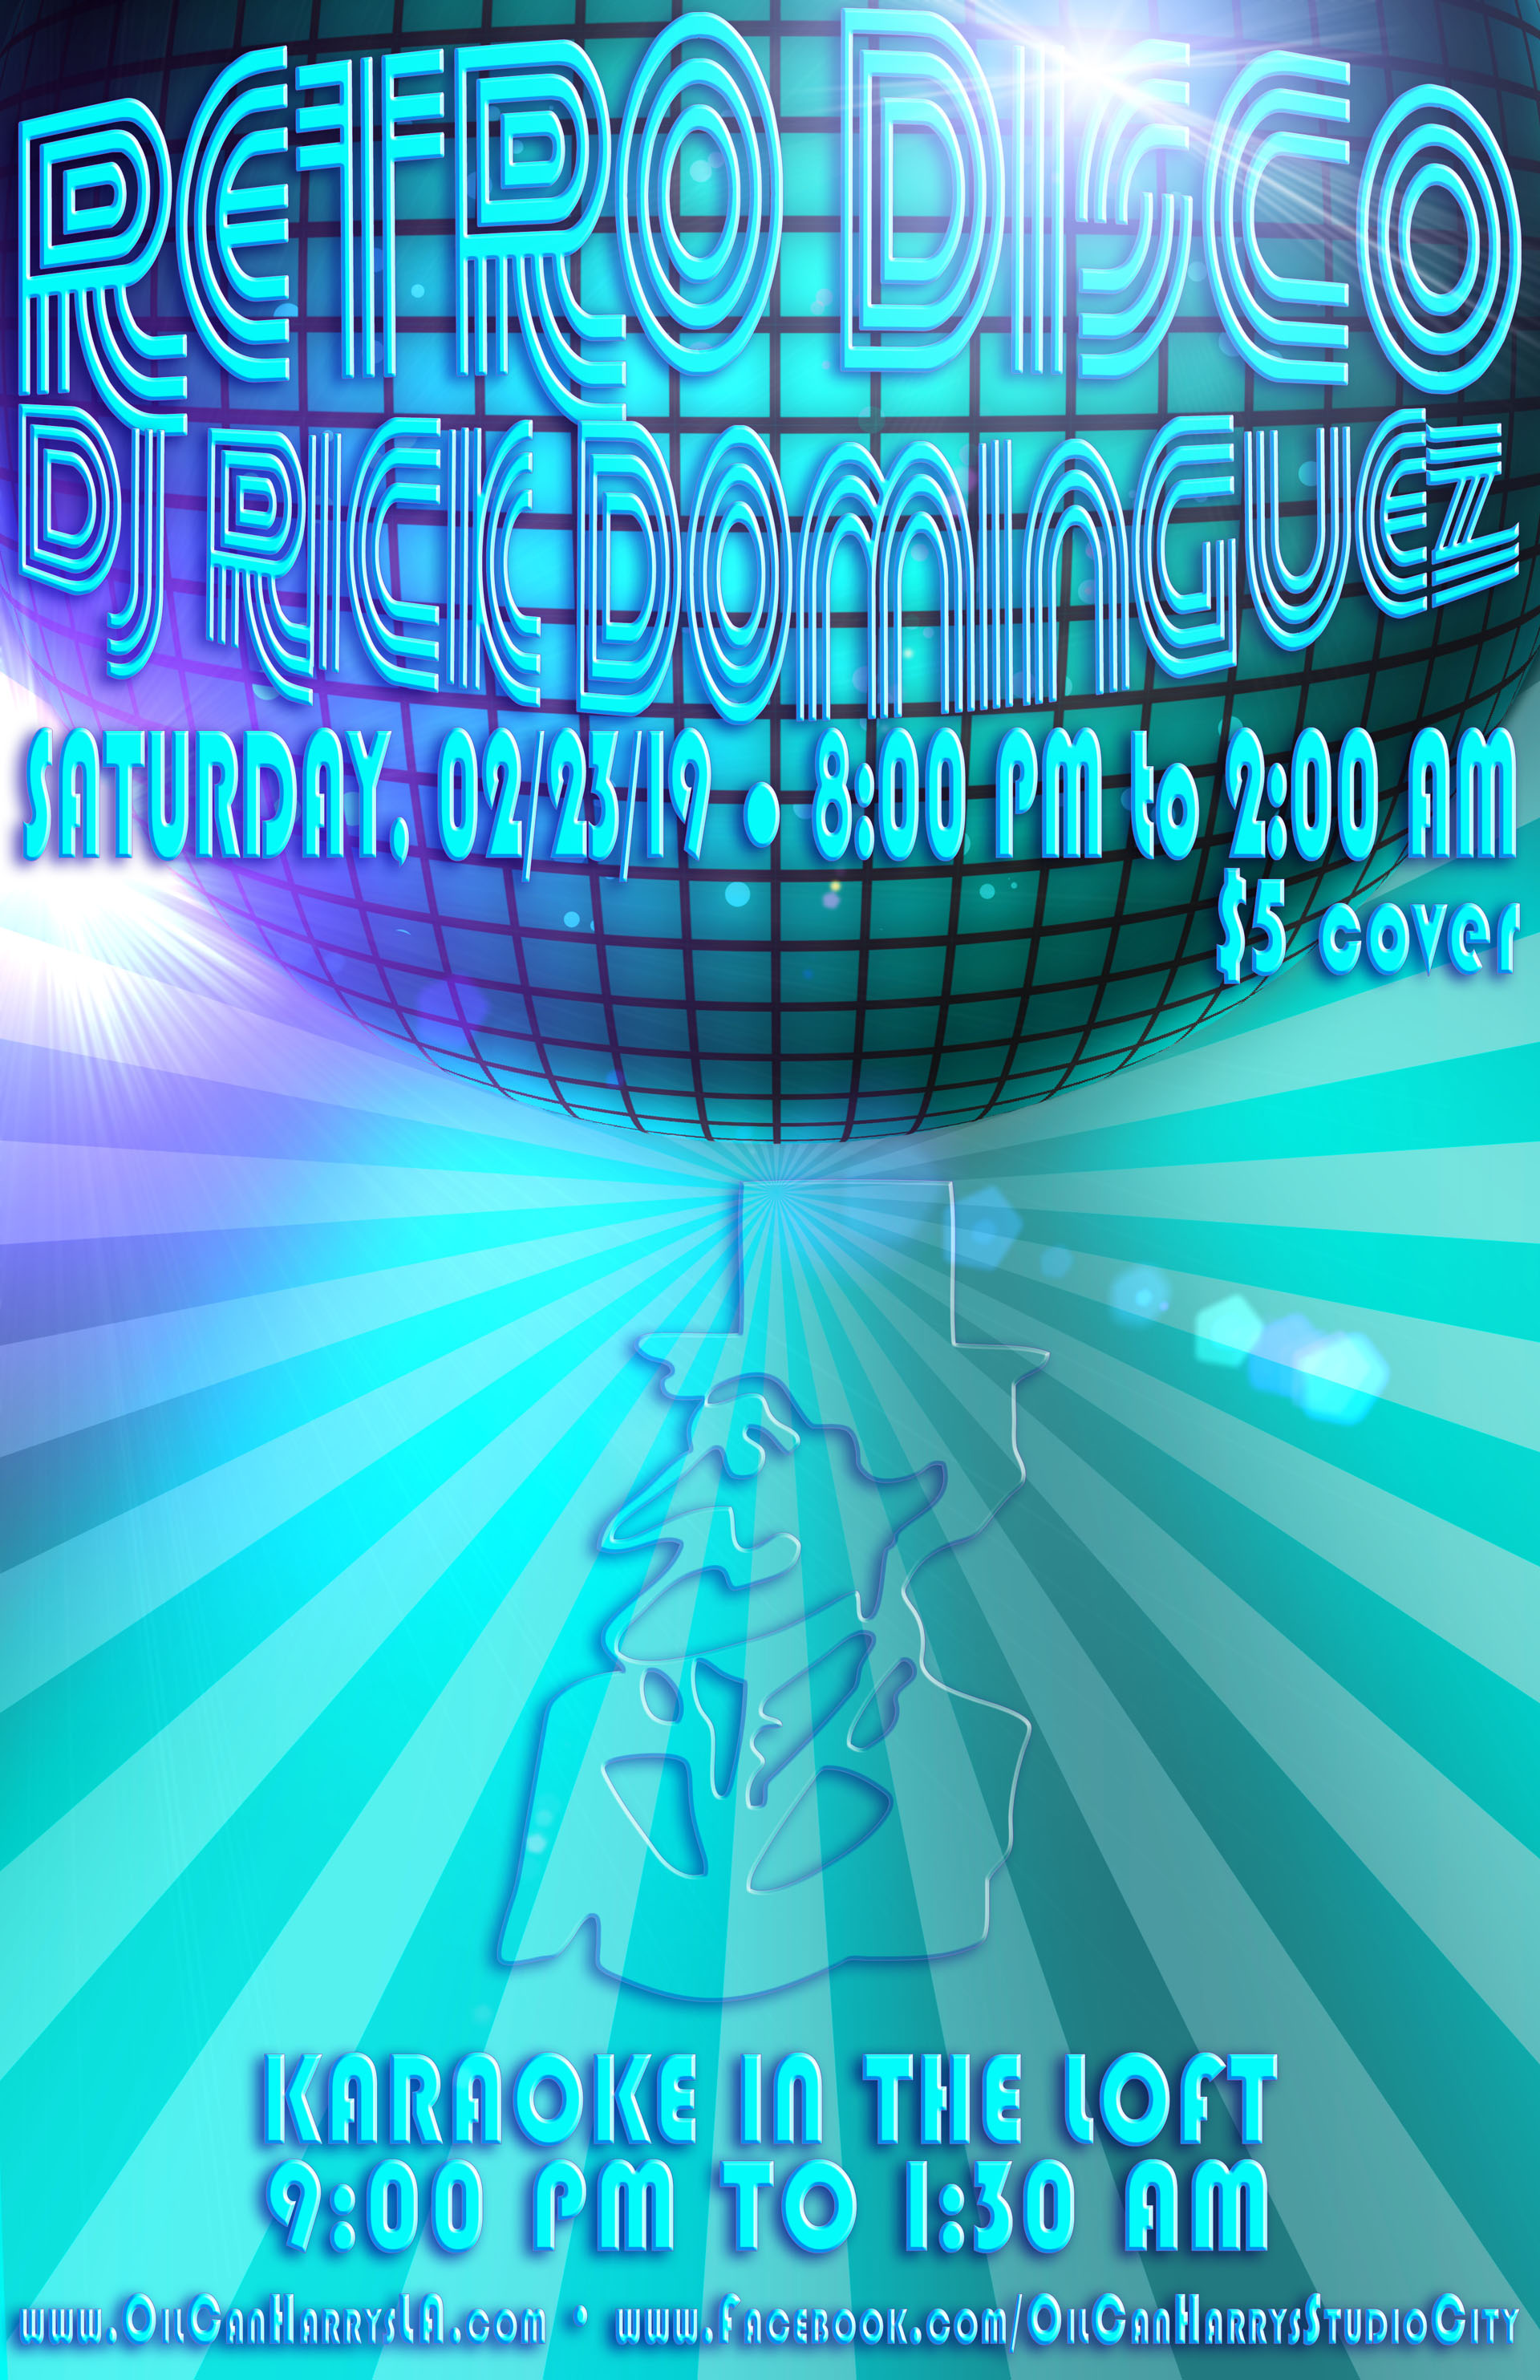 Oil Can Harry's Hosts DJ RICK DOMINGUEZ for RETRO DISCO: Saturday, February 23, 2019! 8:00 PM to 2:00 AM! $5.00 Cover.